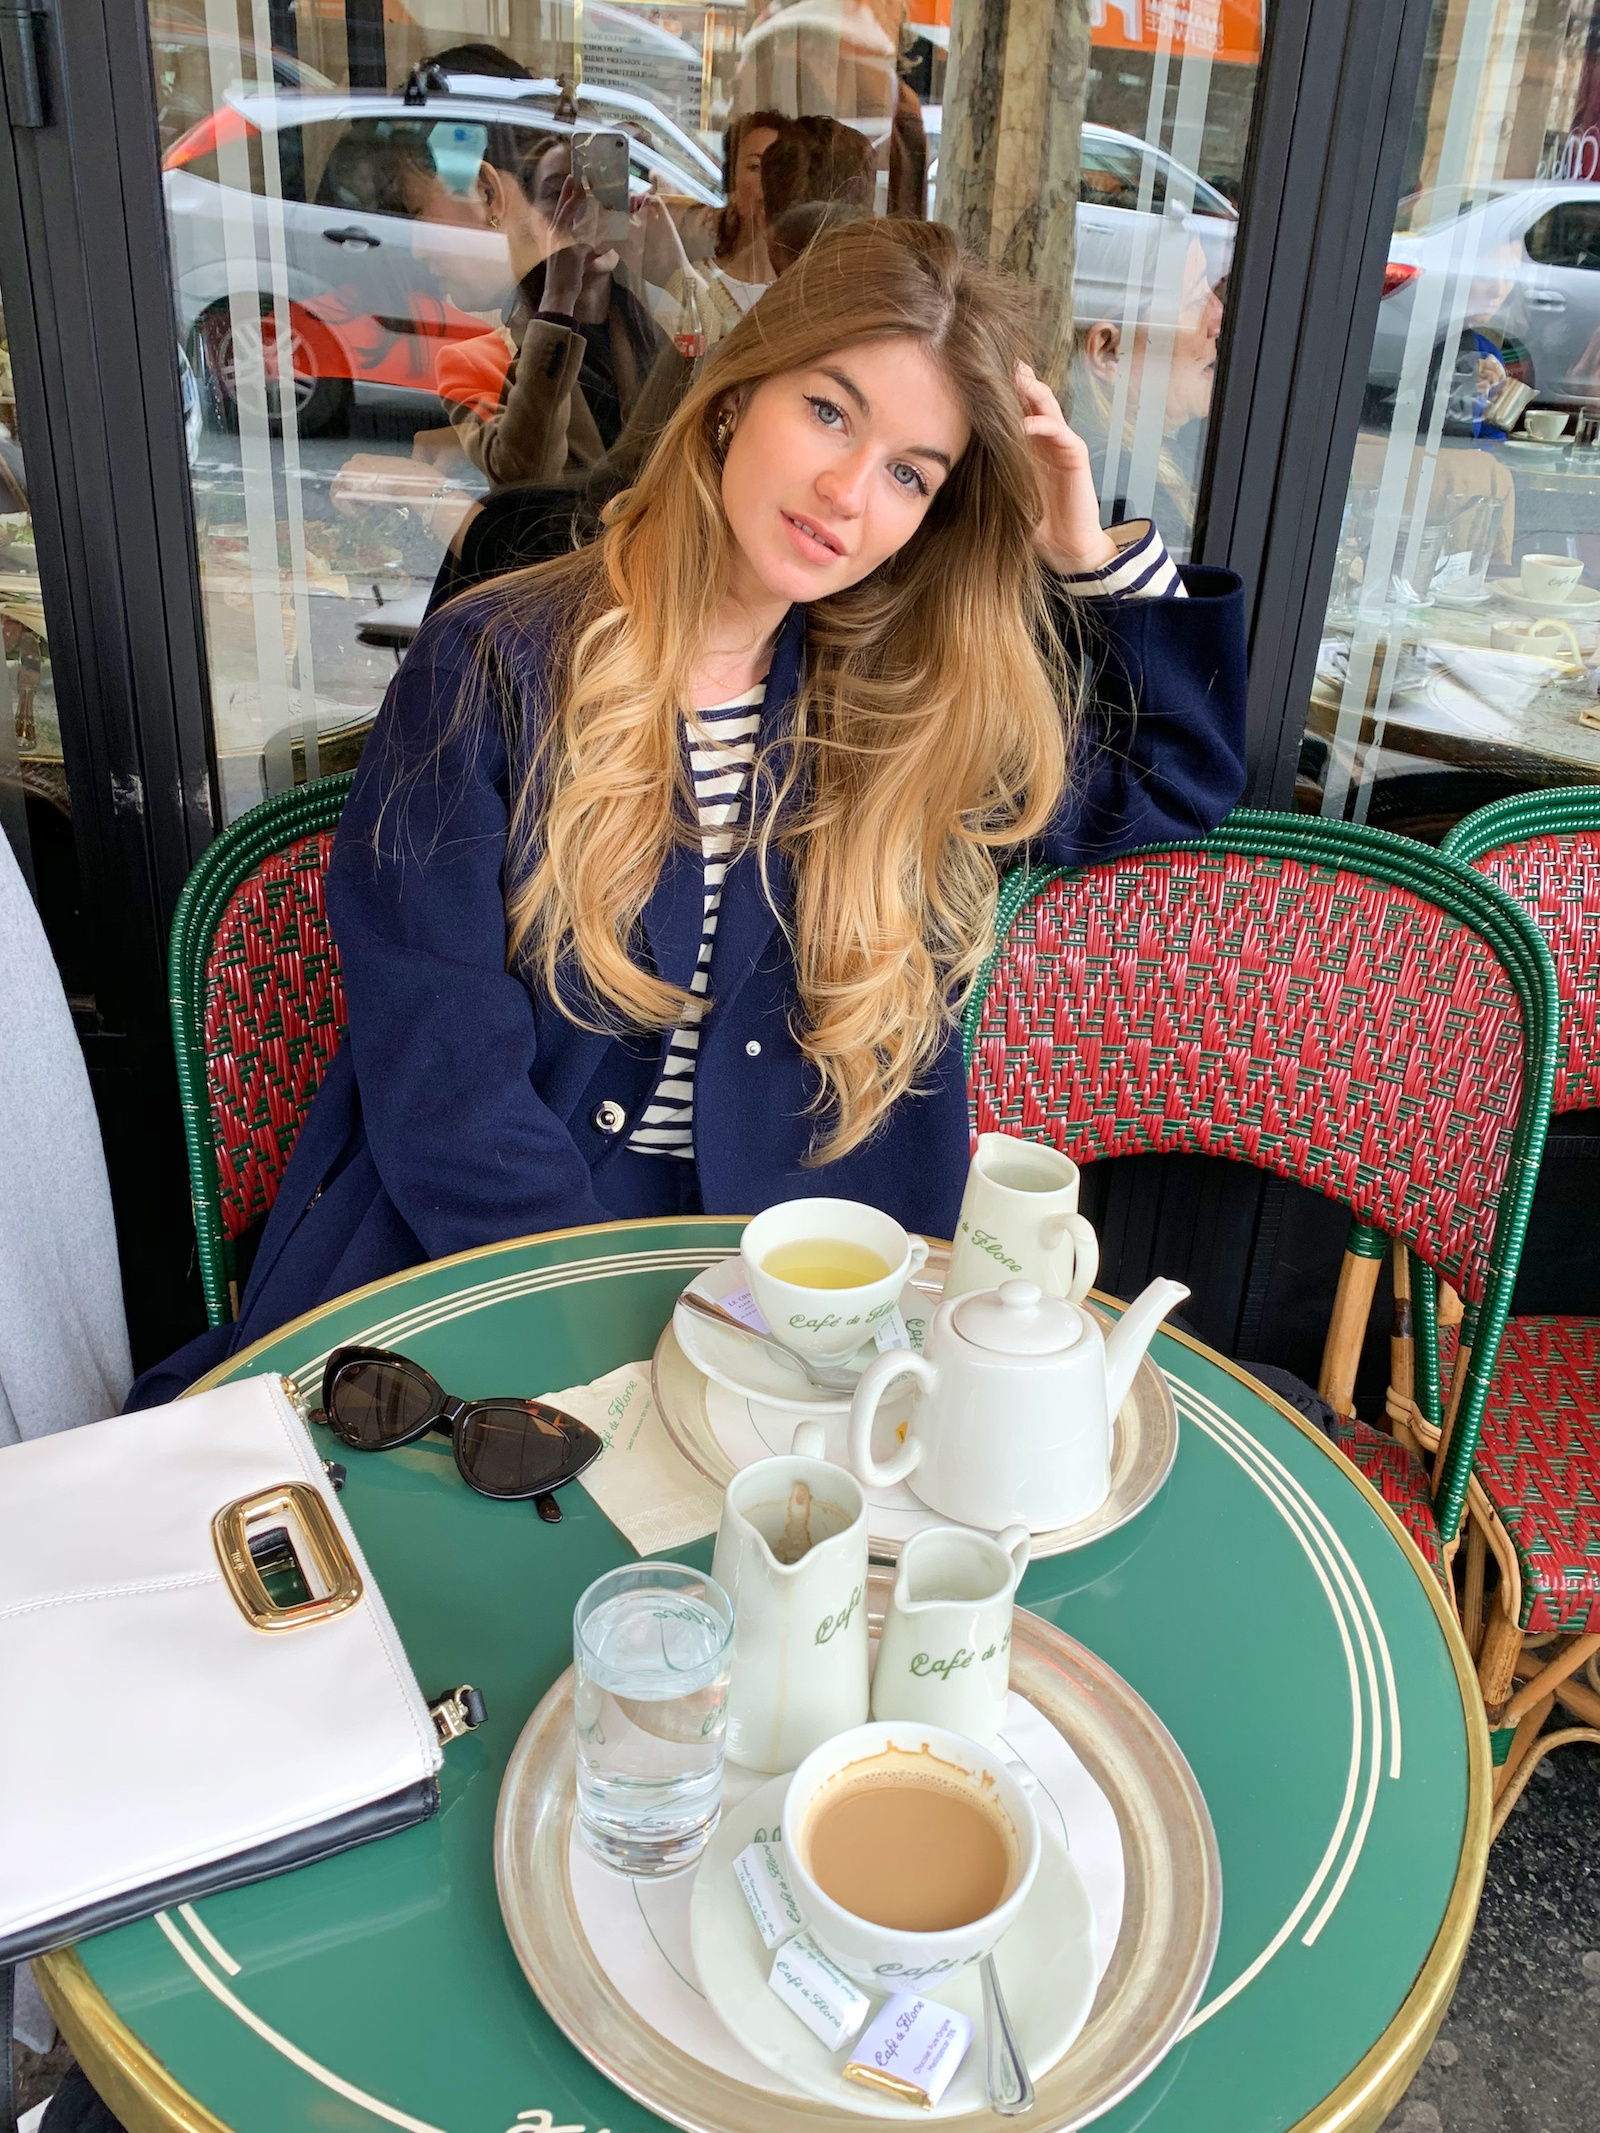 Constance Arnoult – French girl beauty and style tips